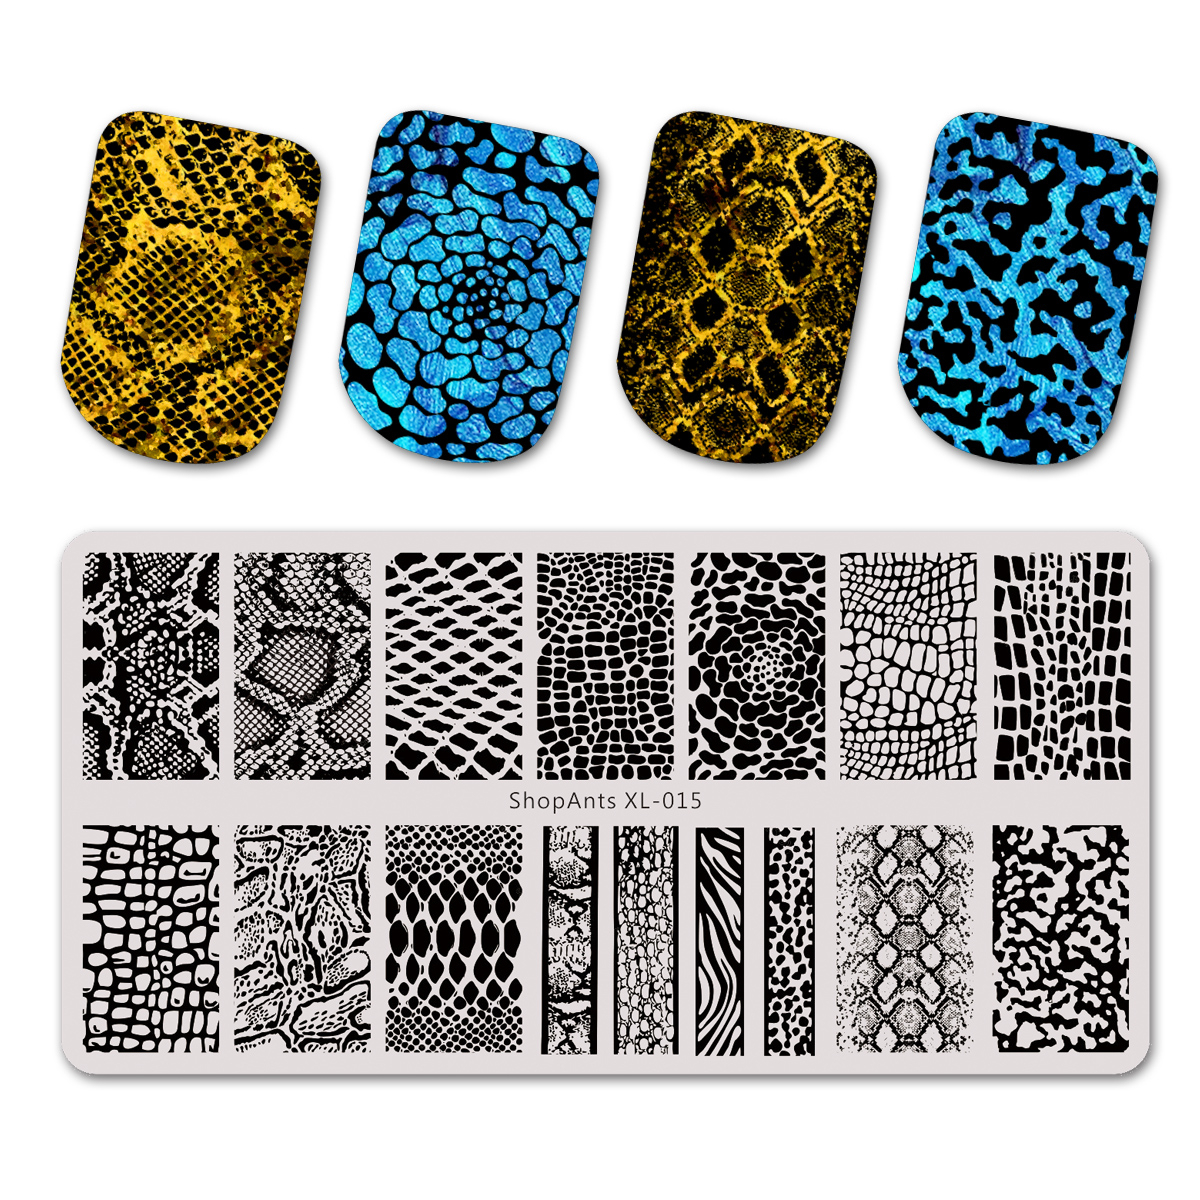 SHOPANTS 6*12cm New Rectangle Stainless Steel Nail Stamping Plate Snake Skin Pattern Nail Art Image Stamp Templates